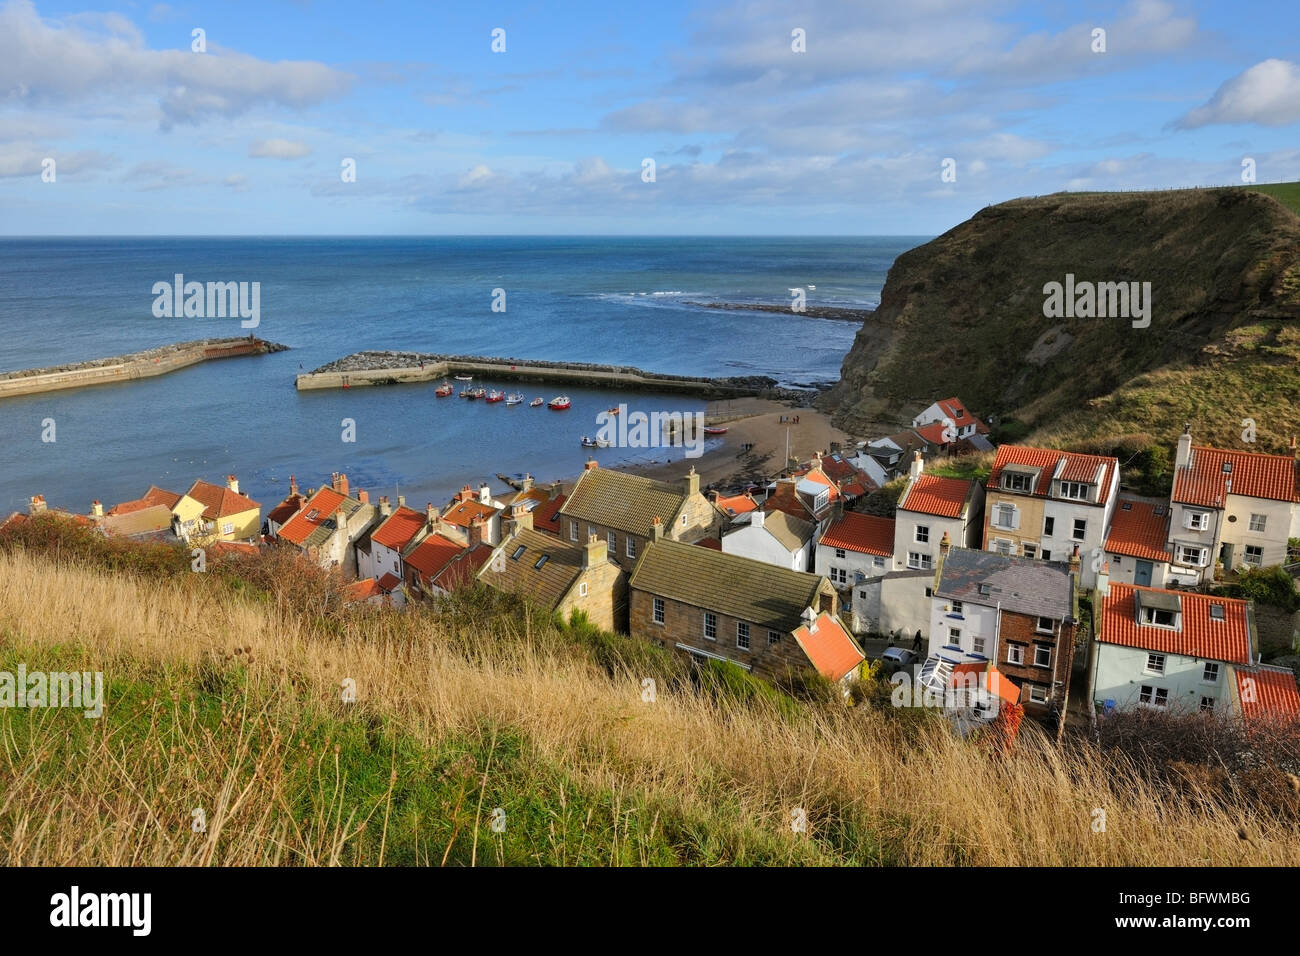 Hillside Cottages protected by Staithes Harbour, Yorkshire Heritage Coast, England - Stock Image